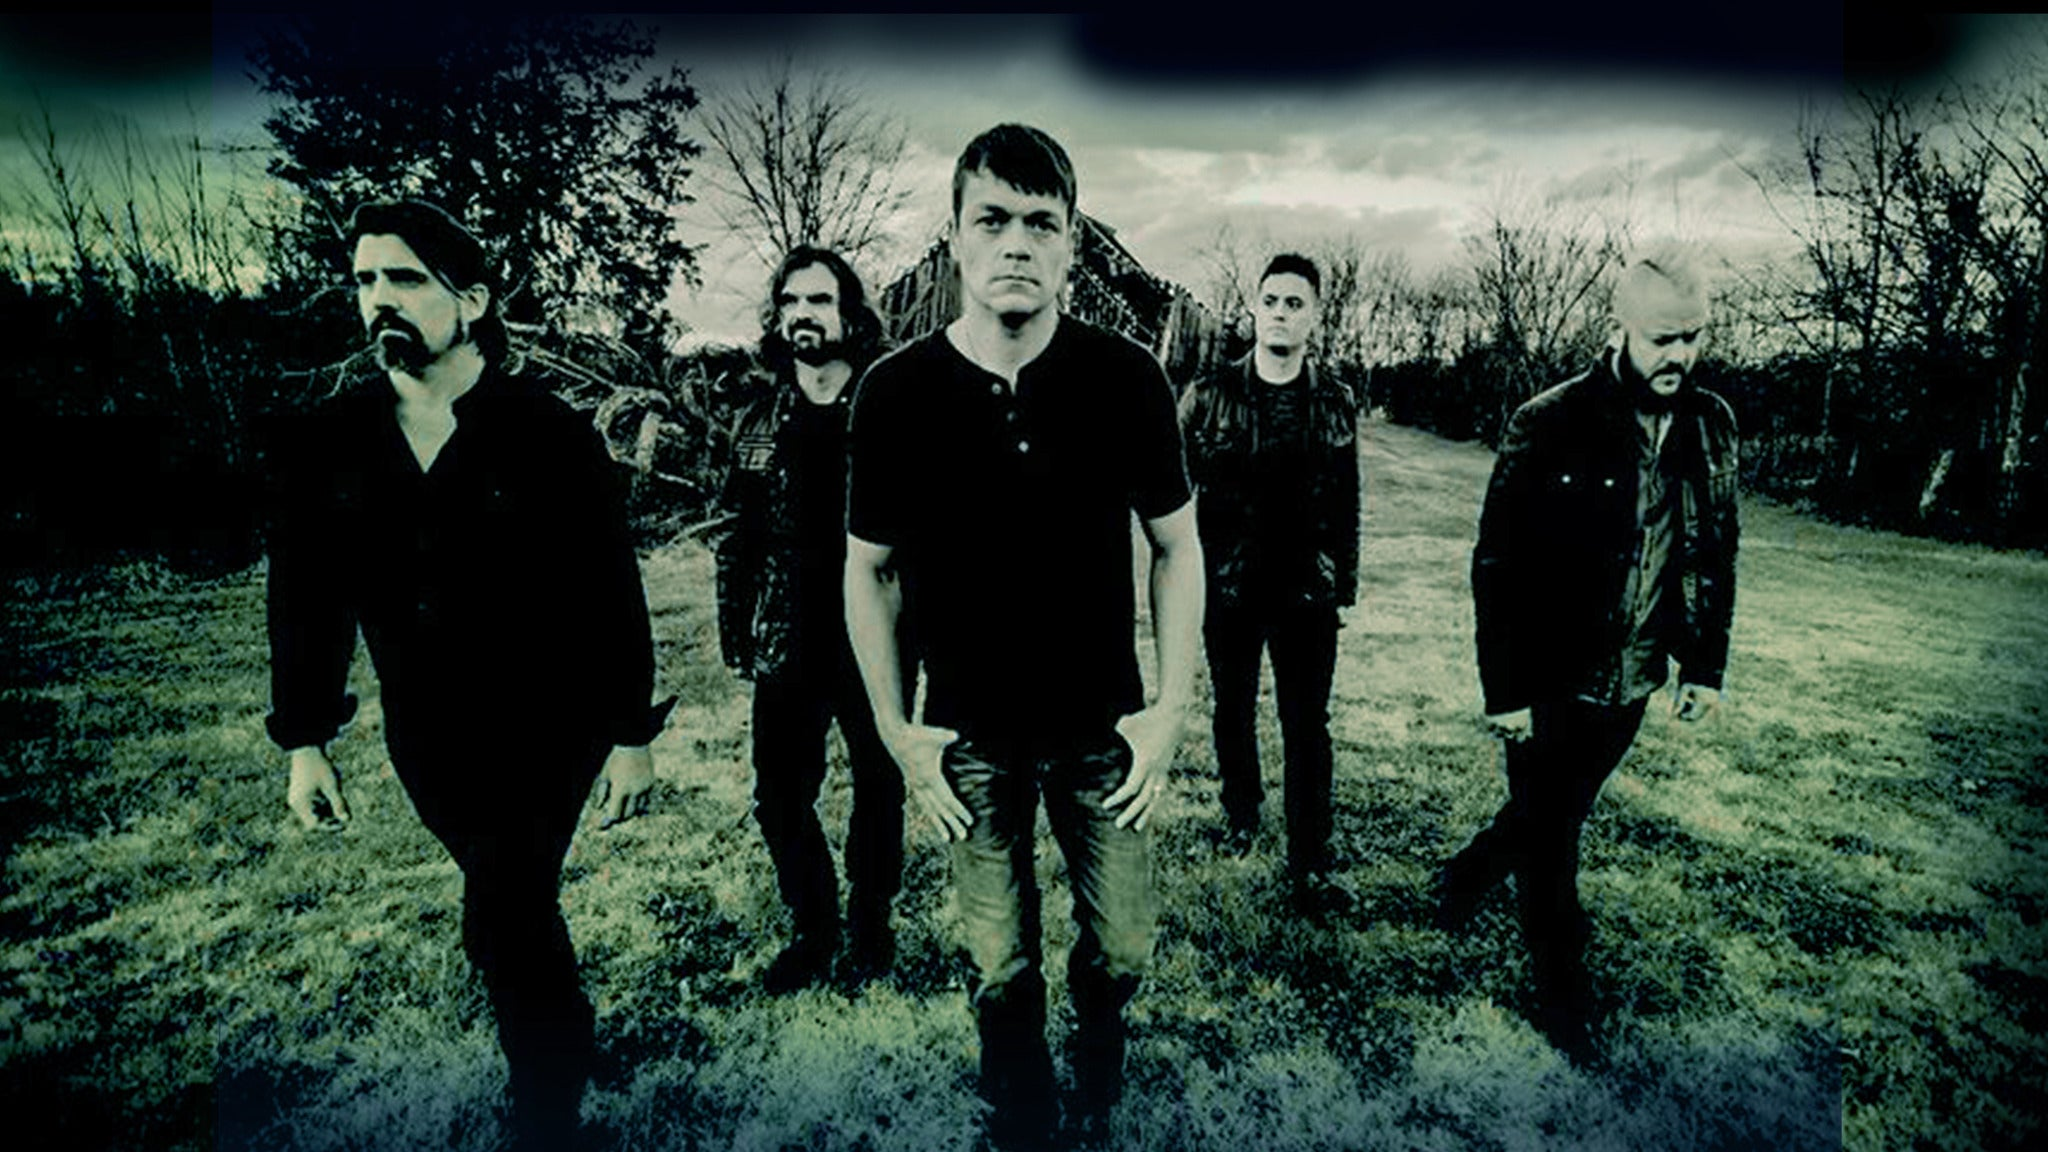 3 Doors Down at Harrah's Hoosier Park Outdoor Music Center